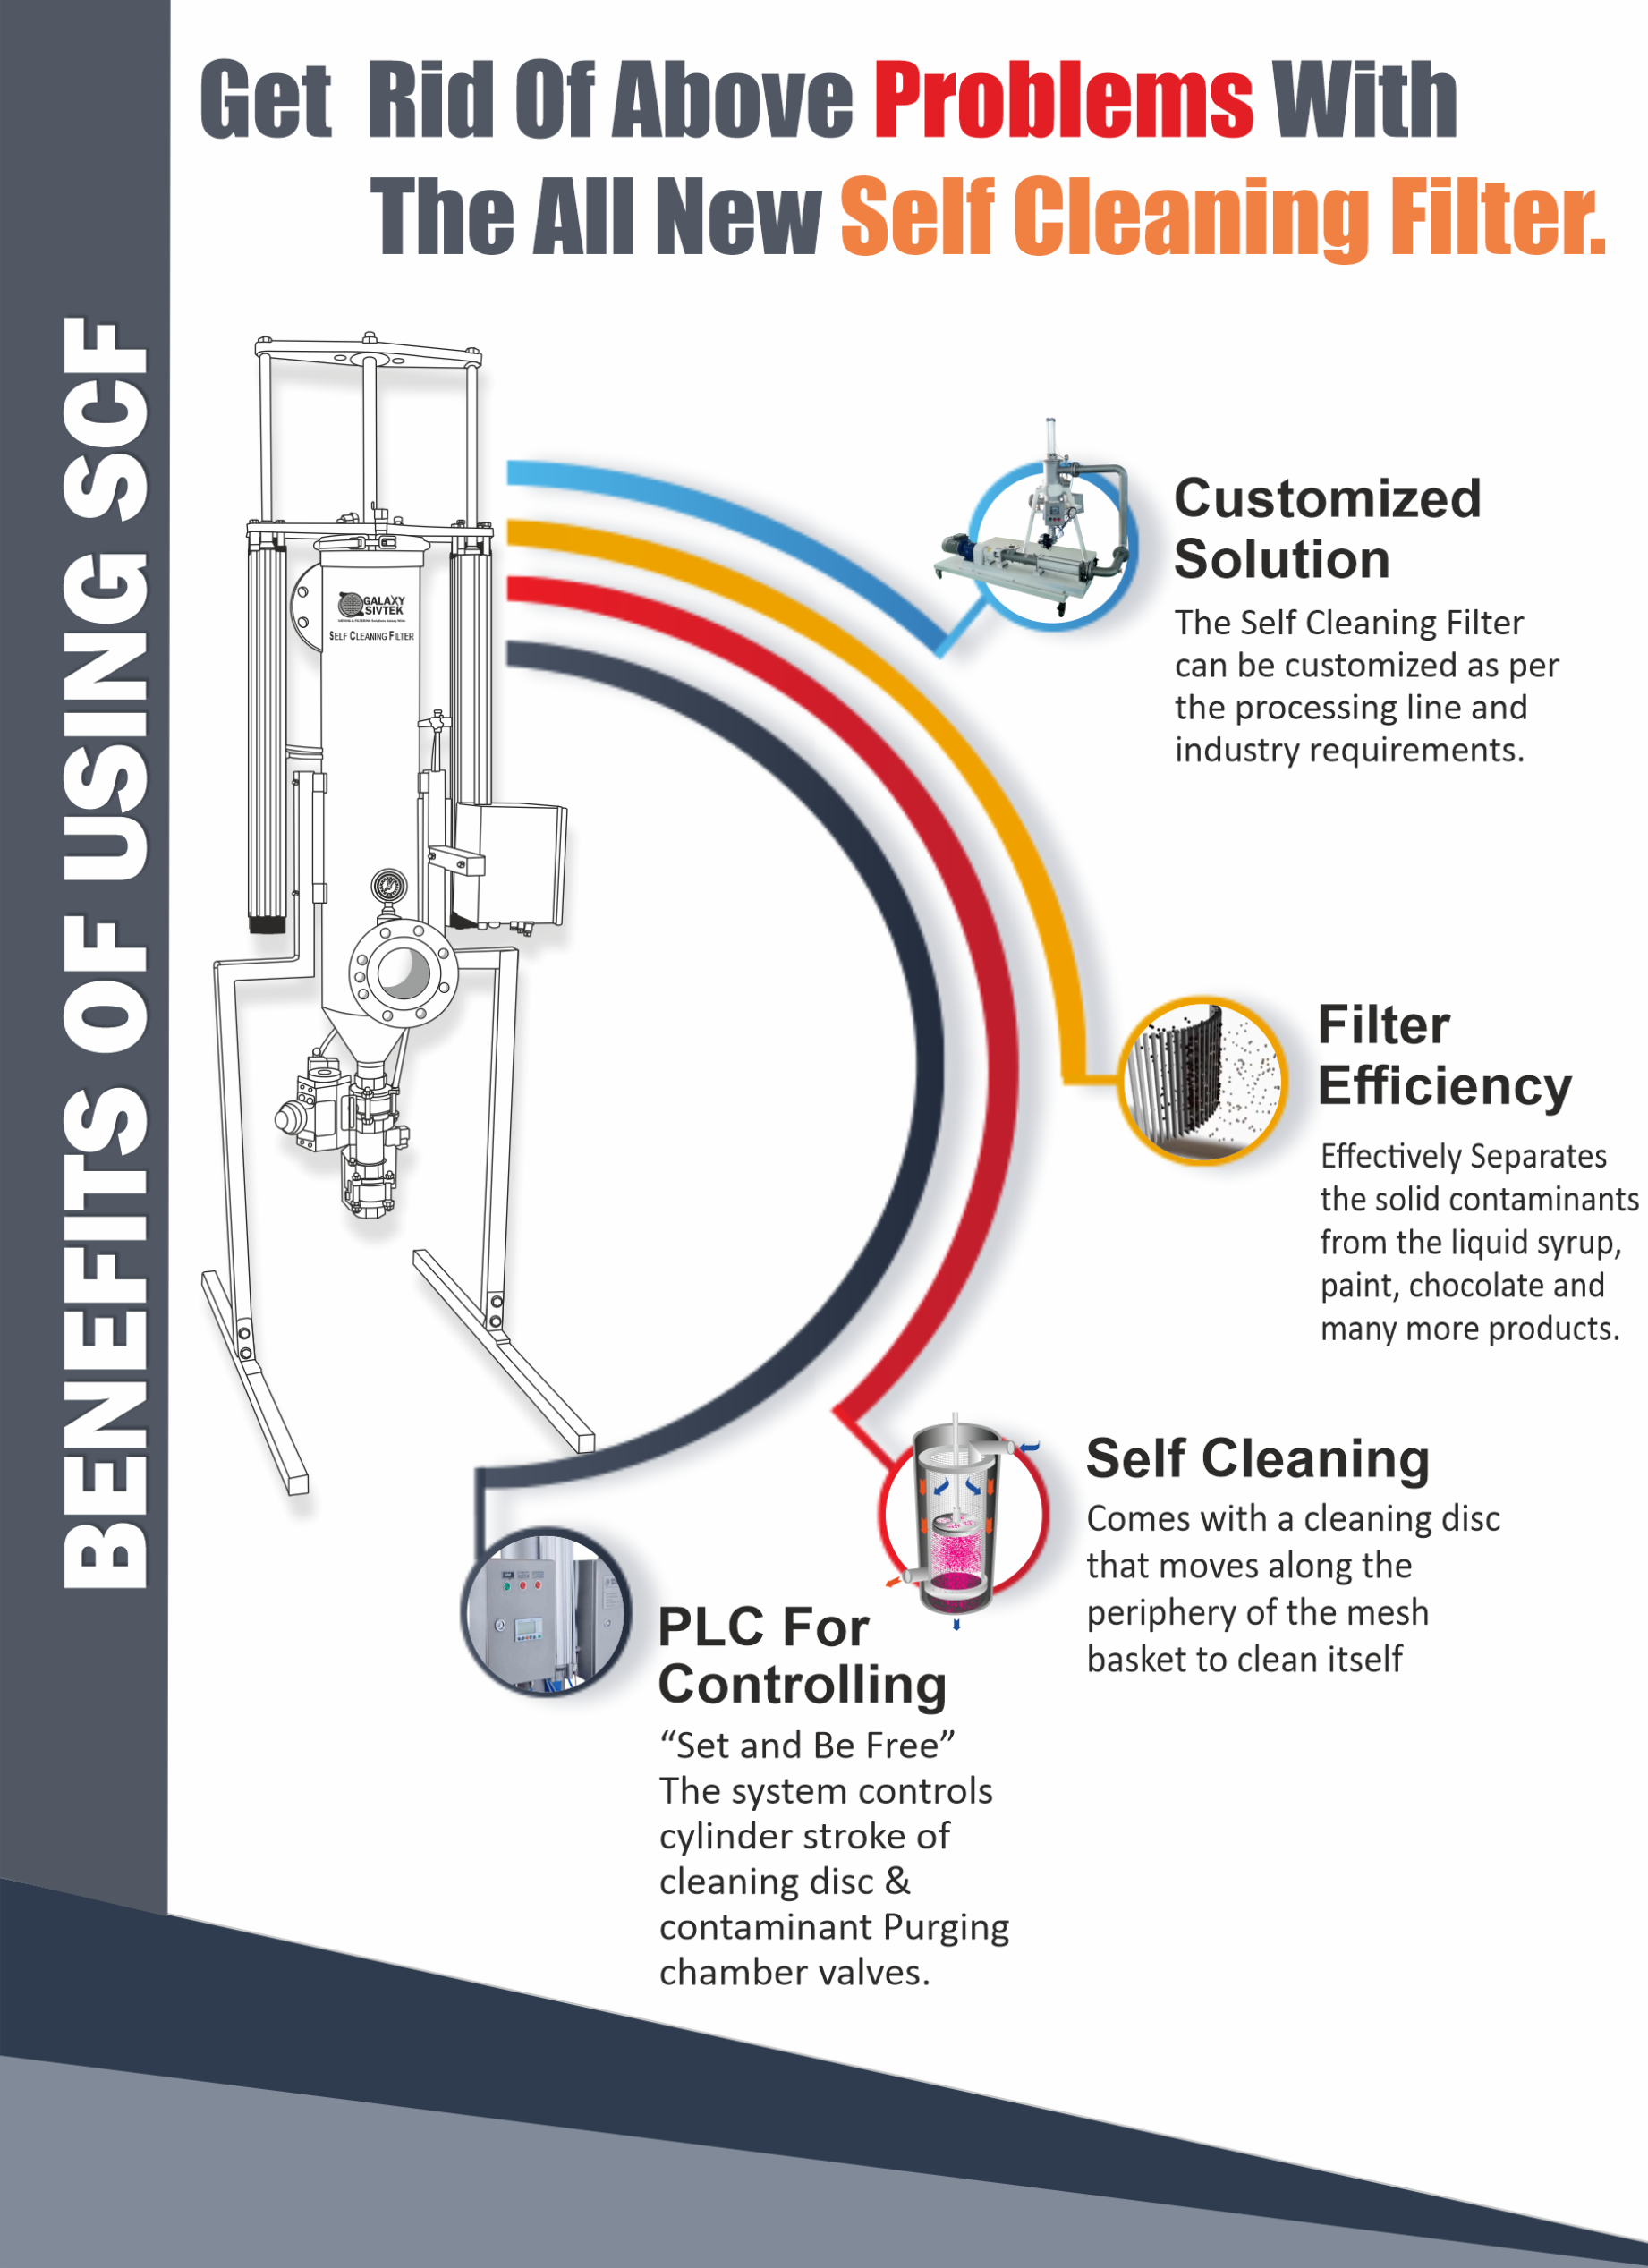 Self-Cleaning Filtration for Paint